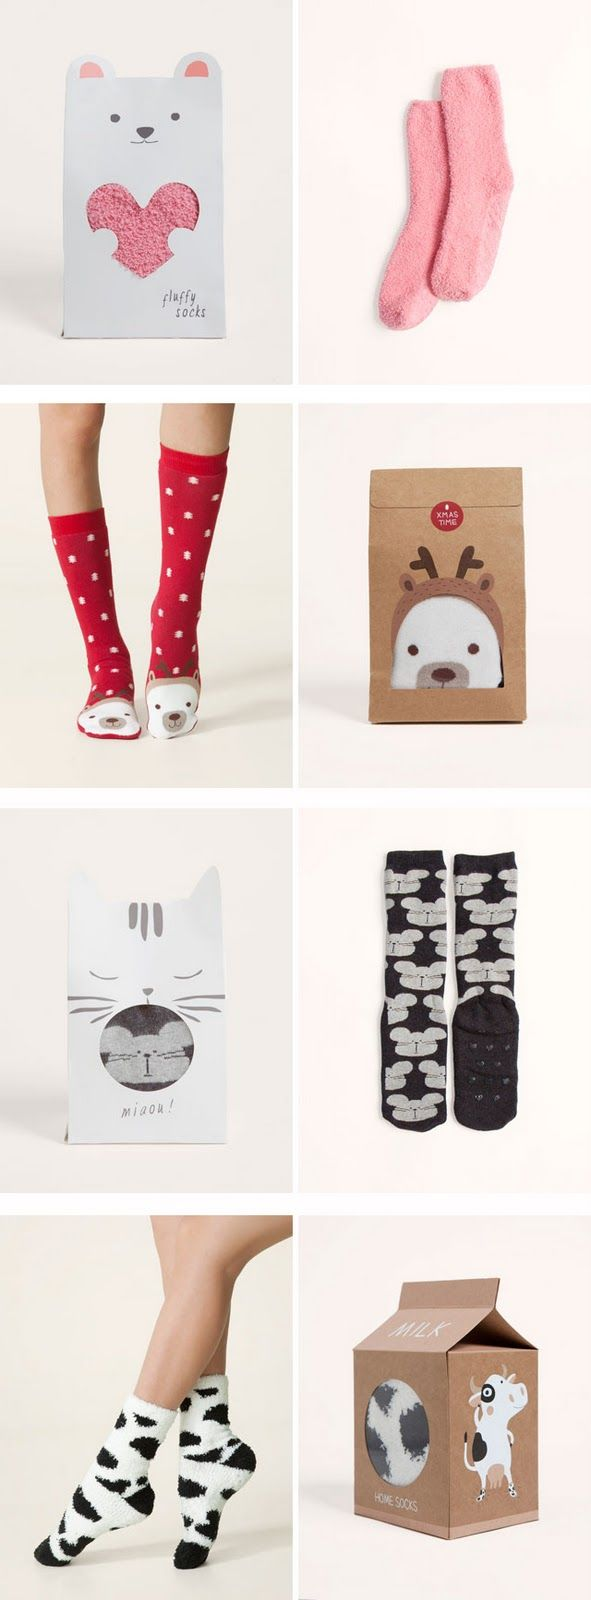 Oysho packaging is a great collection of the cutest sock